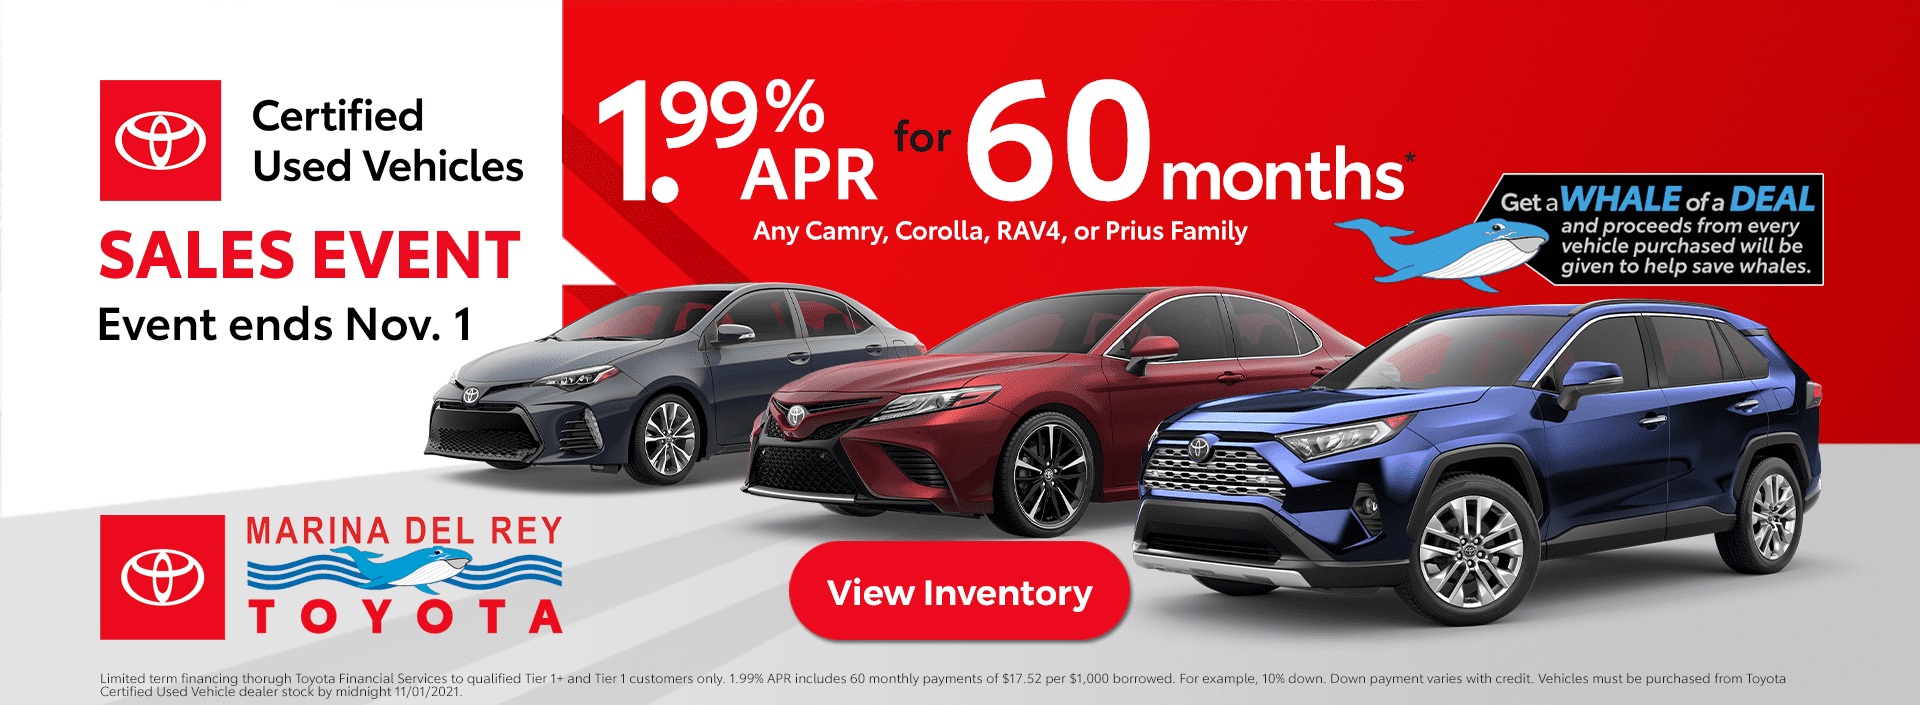 Toyota Certified Used Vehicle Sales Event TCUV